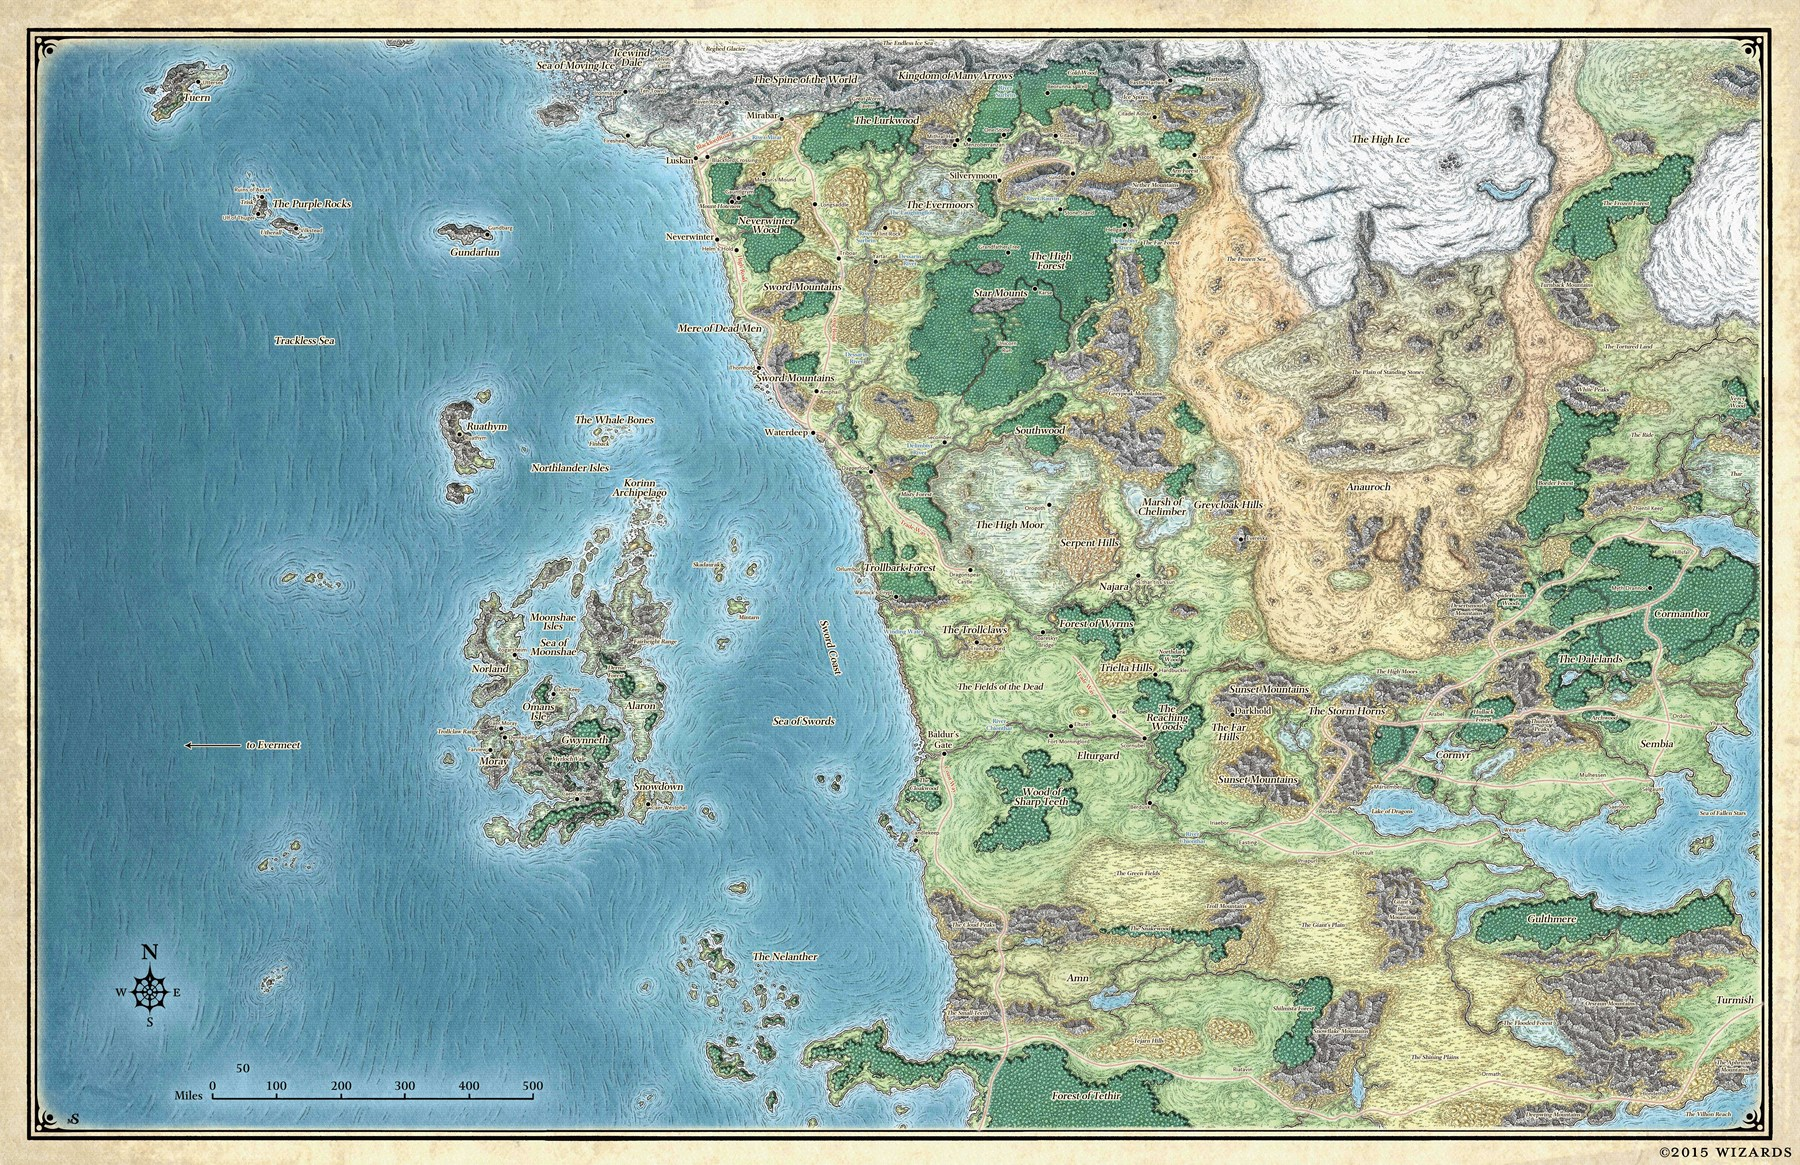 A map of the Forgotten Realms